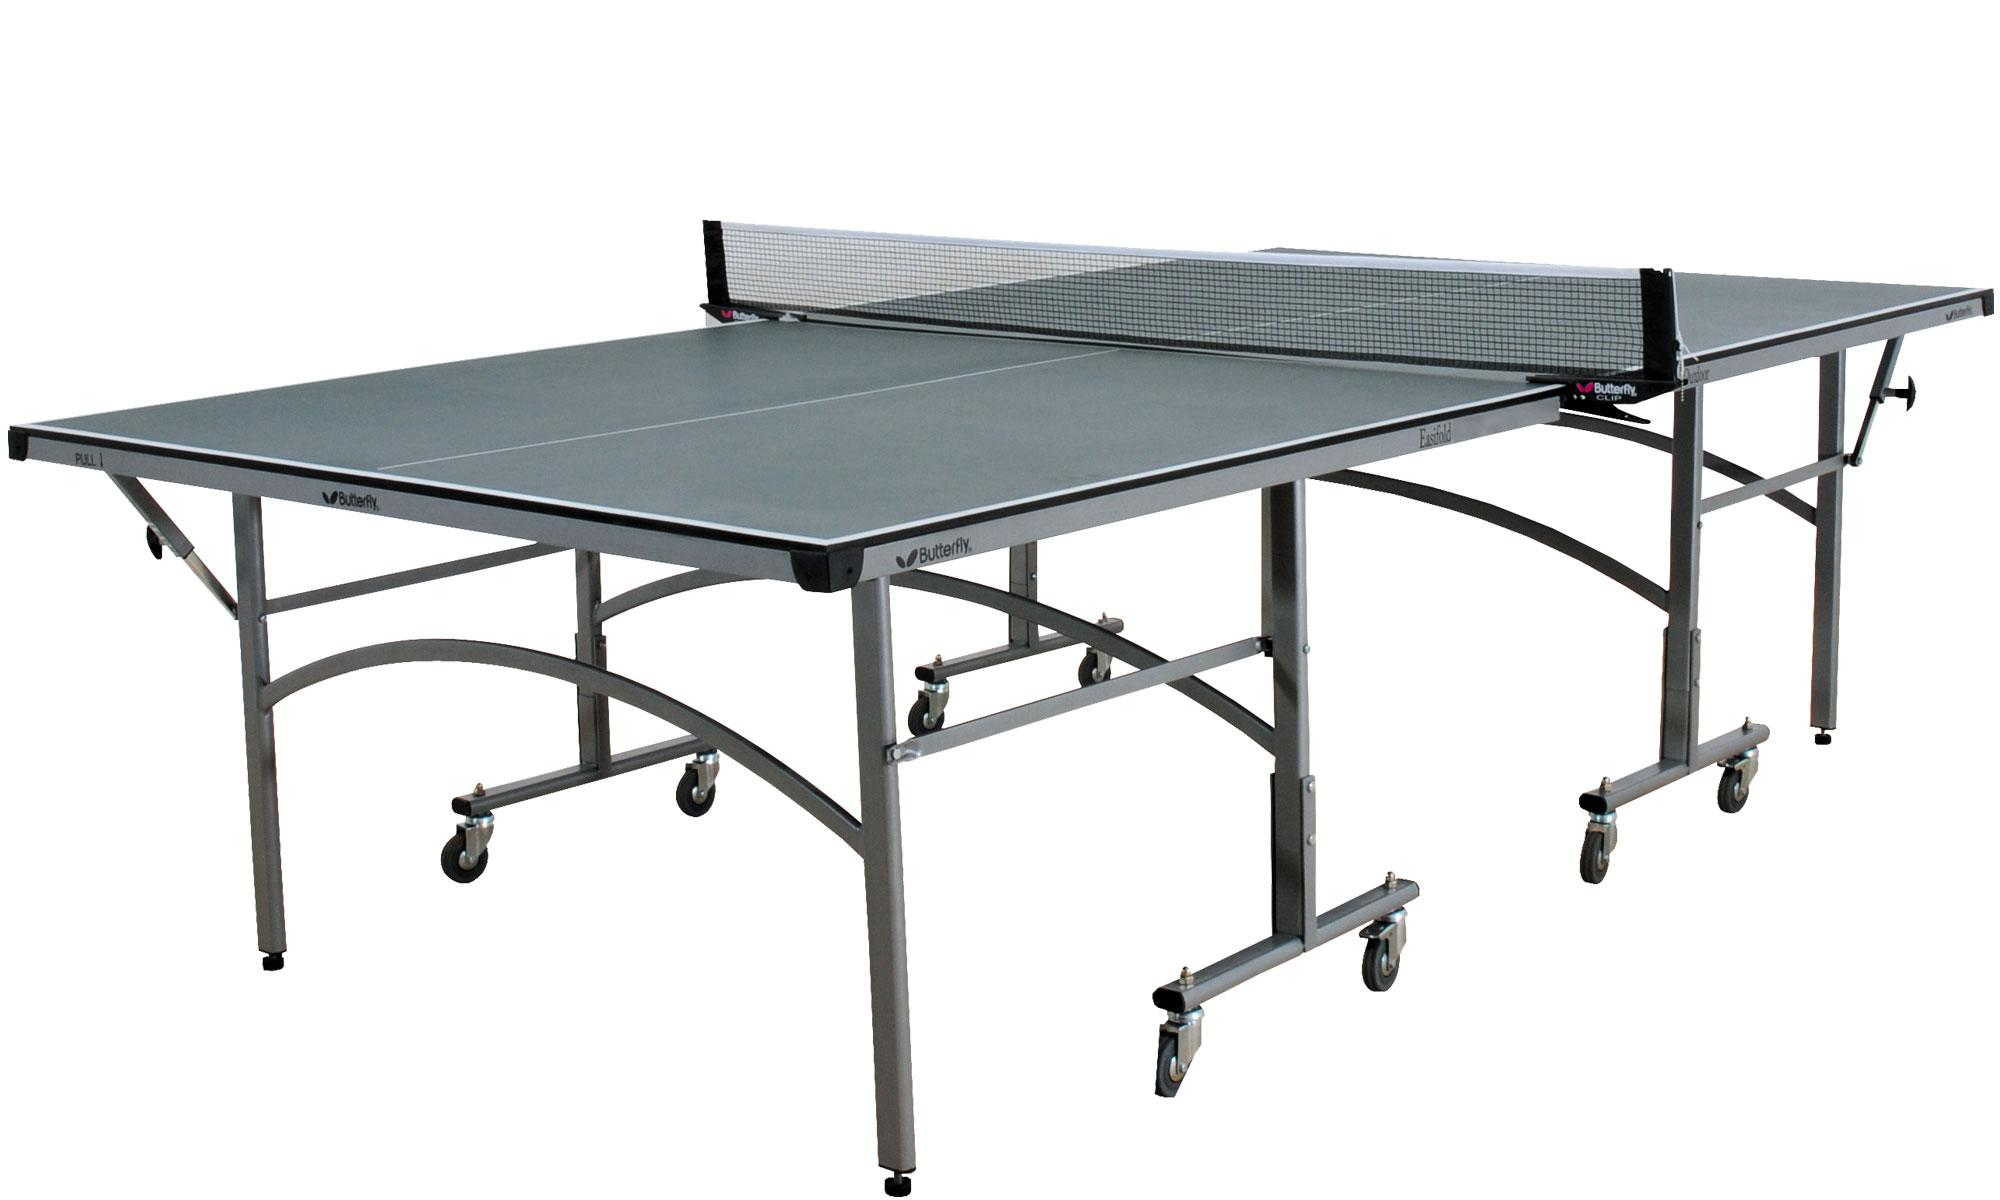 Butterfly easifold outdoor table tennis table - Weatherproof table tennis table ...